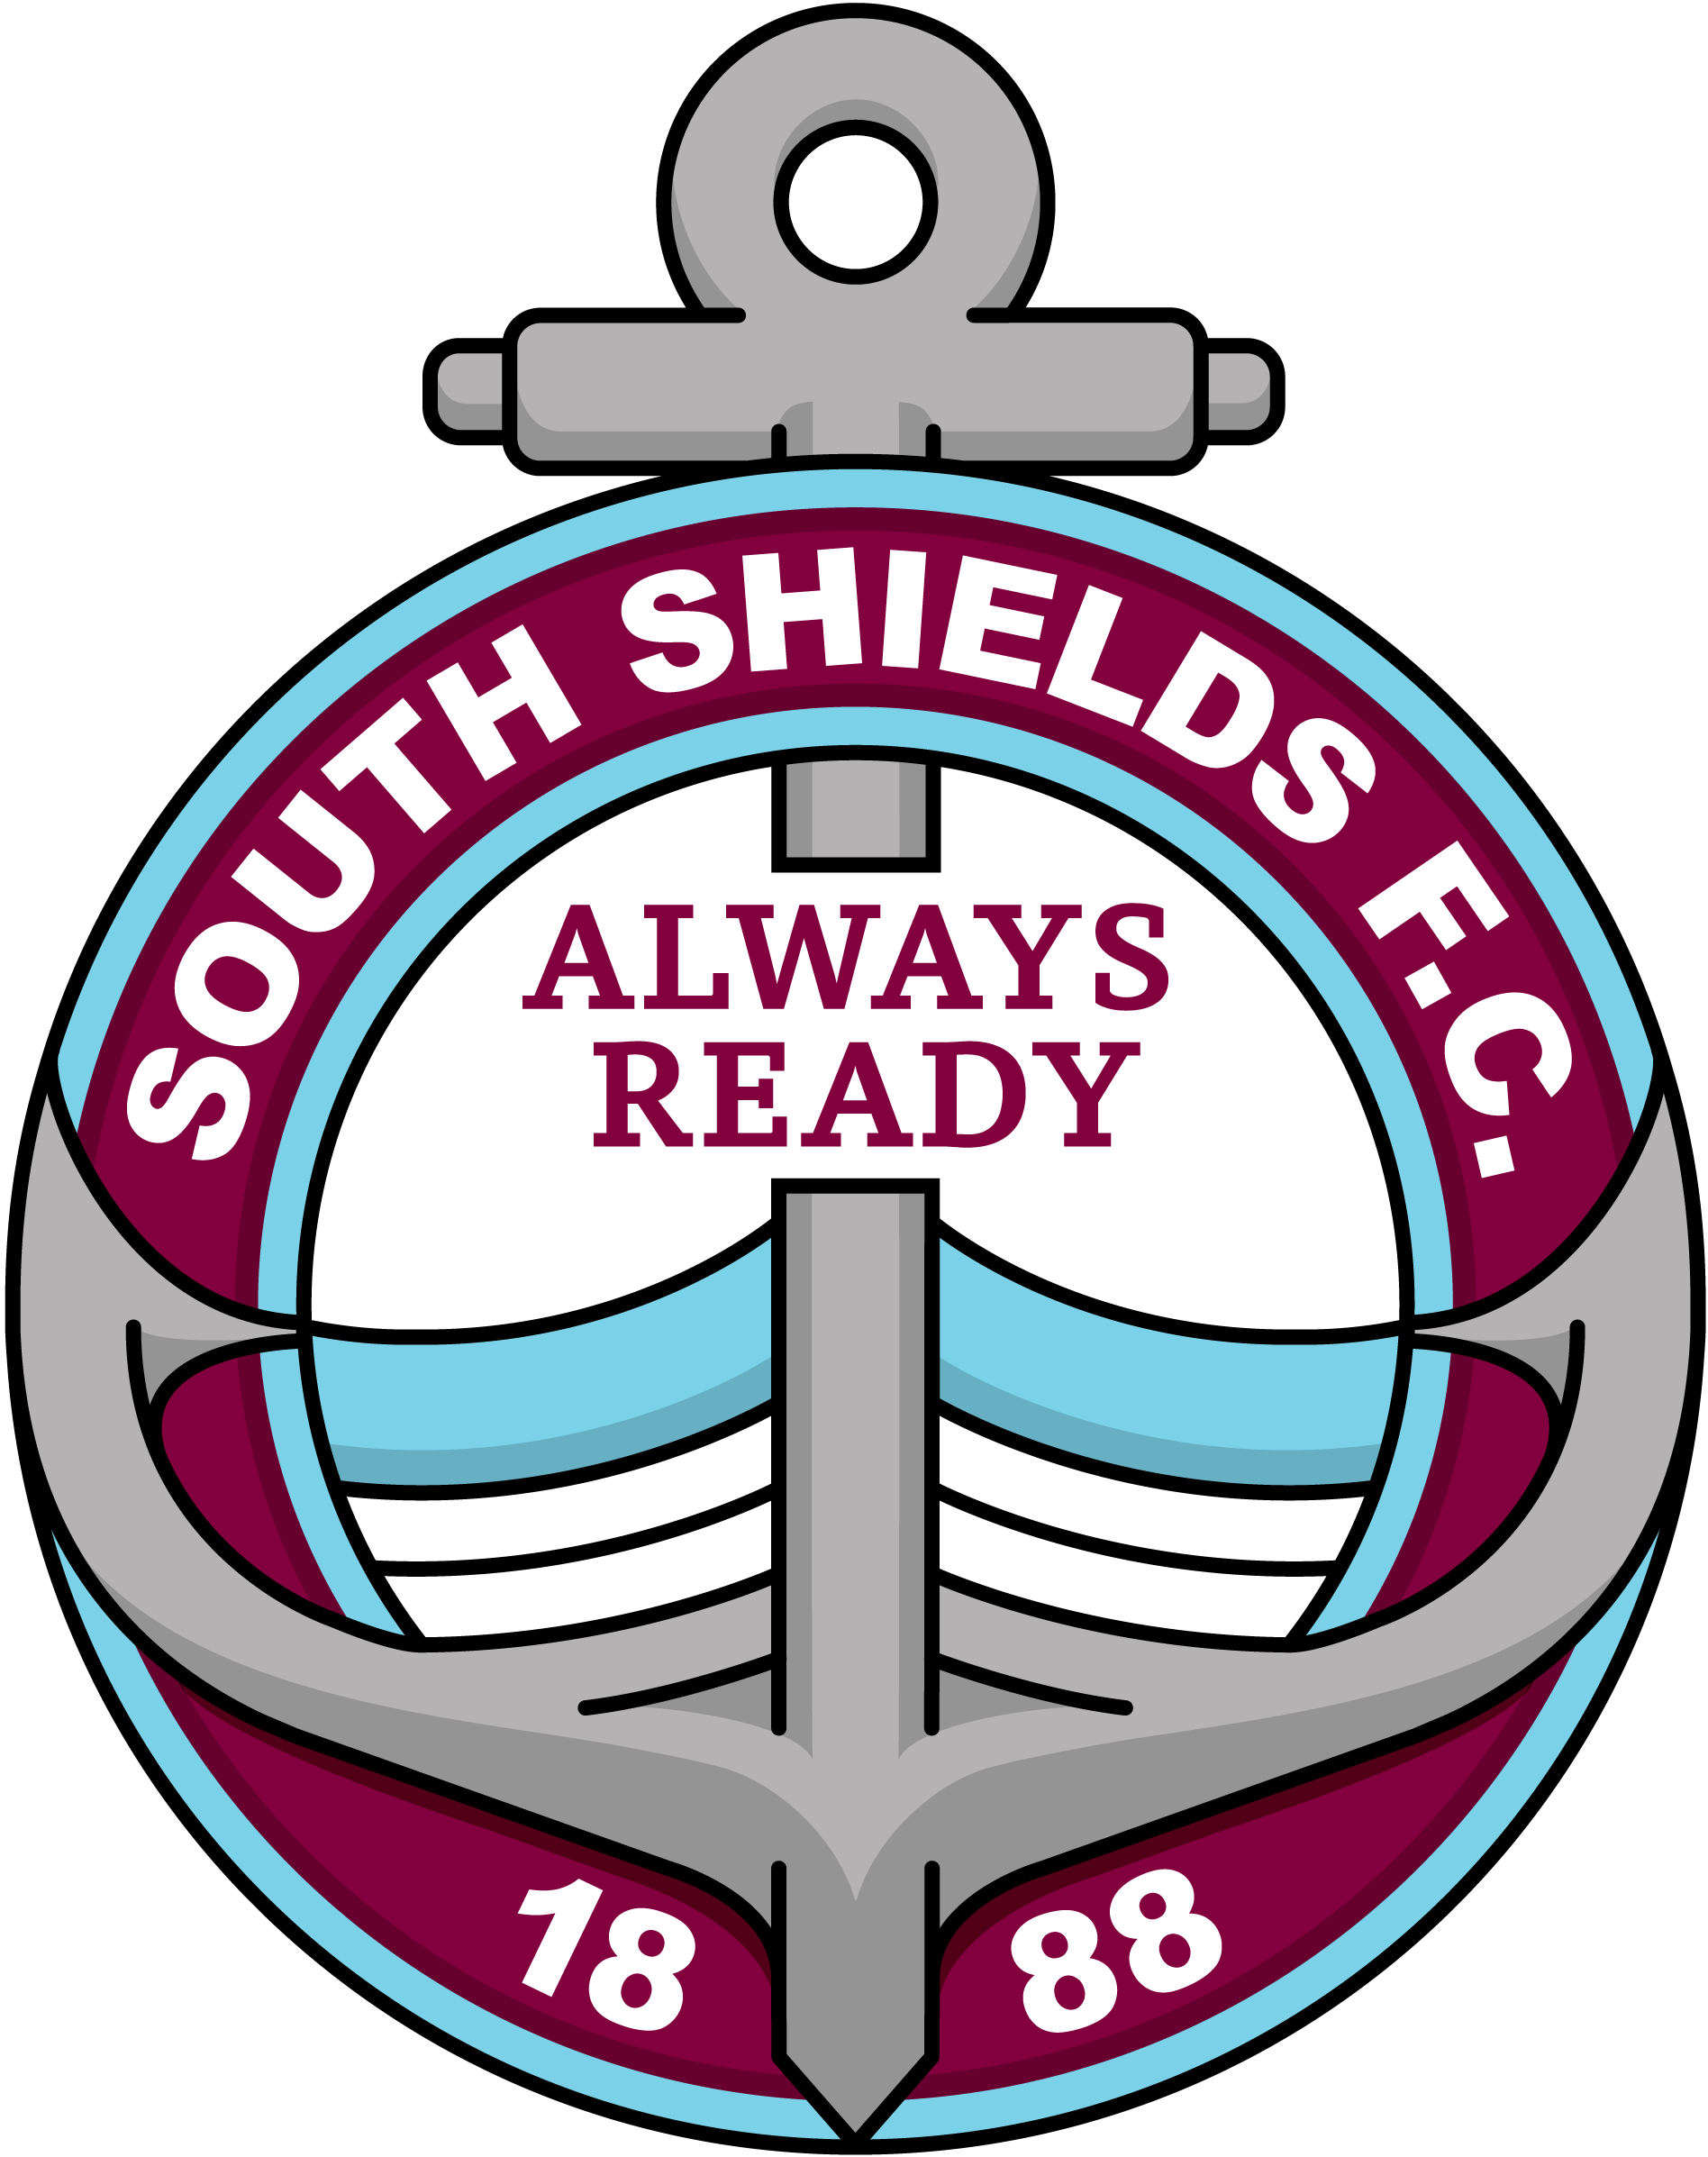 Image result for south shields fc logo